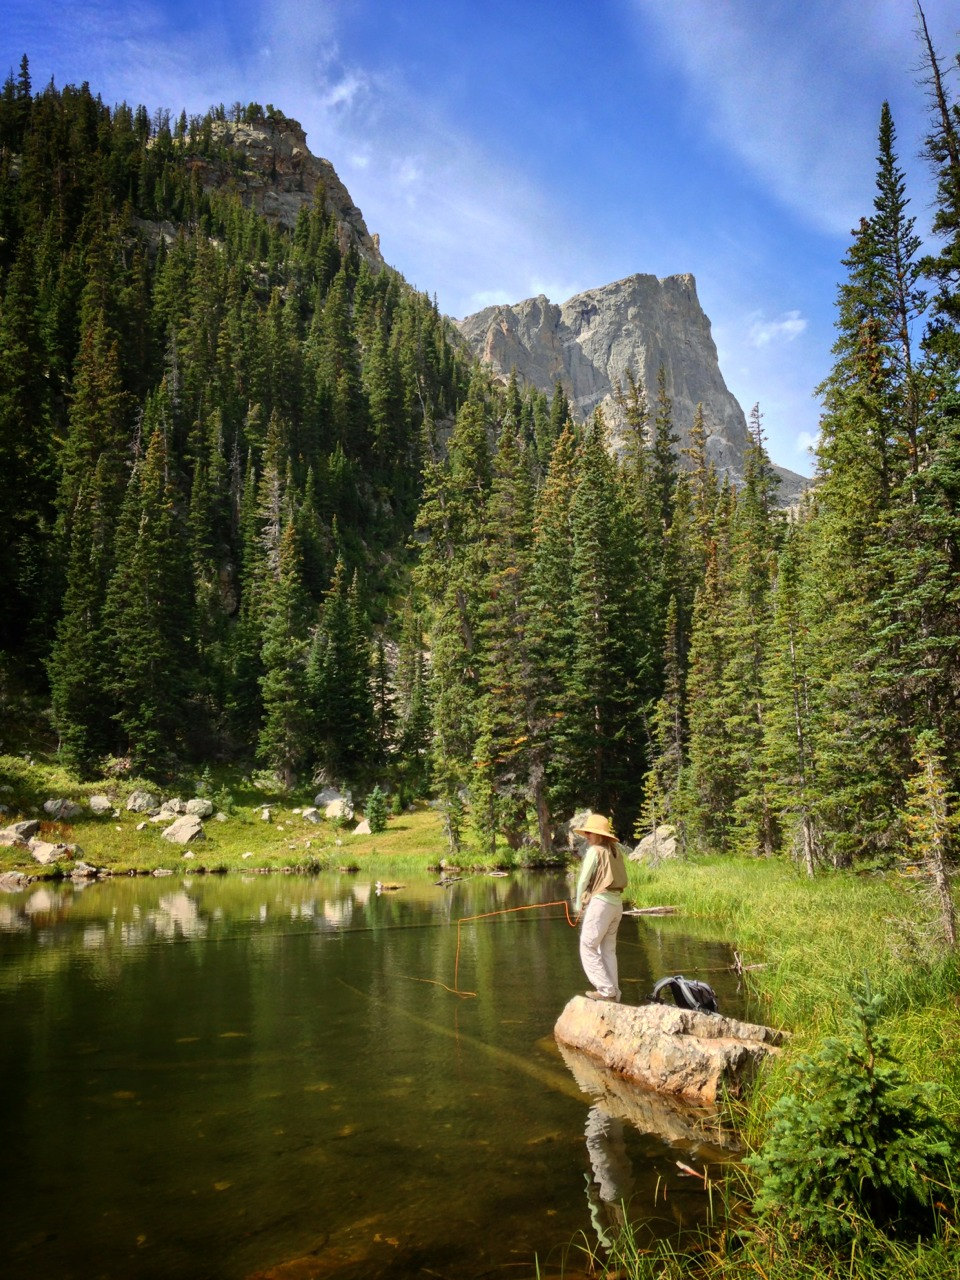 Fly fisherwoman at Rocky Mountain national park